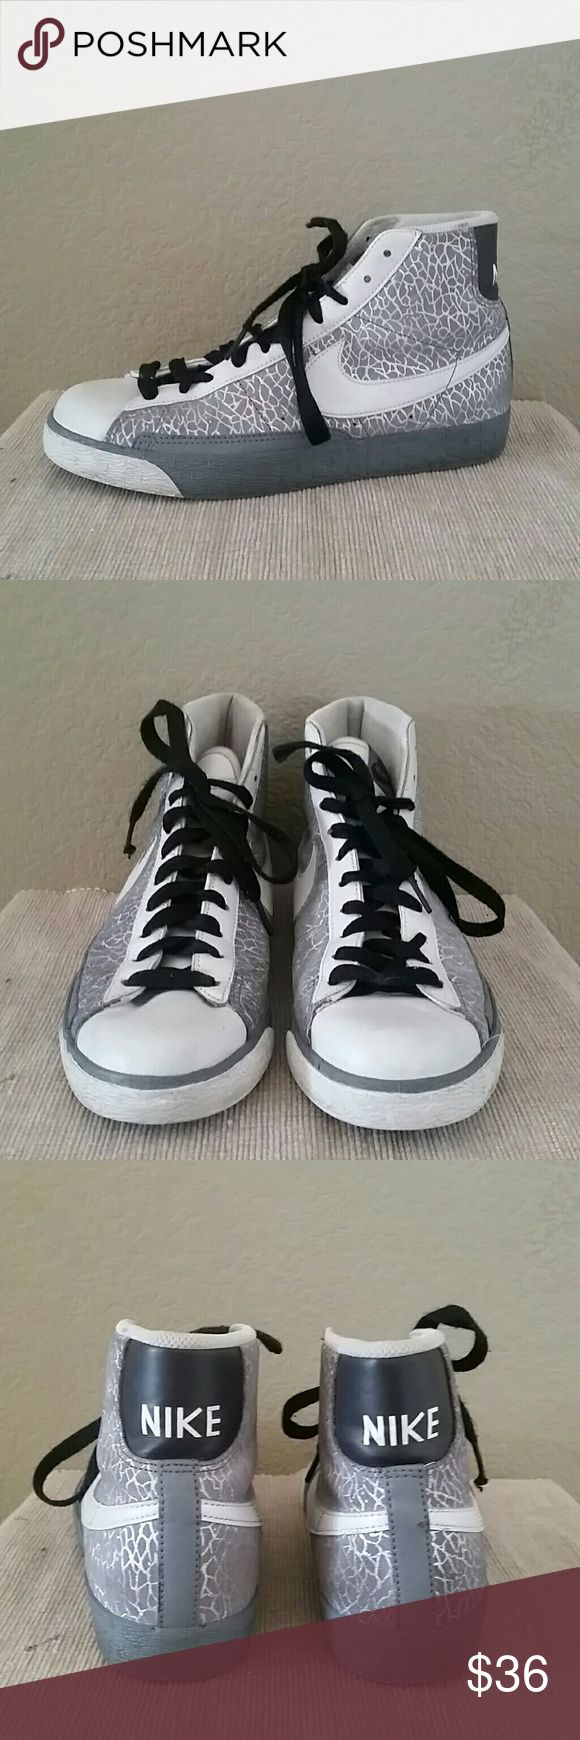 Nike gray silver metallic hi top sneakers 8.5 Nike hi top sneakers, size 8.5, gray silver white, preowned Nike Shoes Athletic Shoes